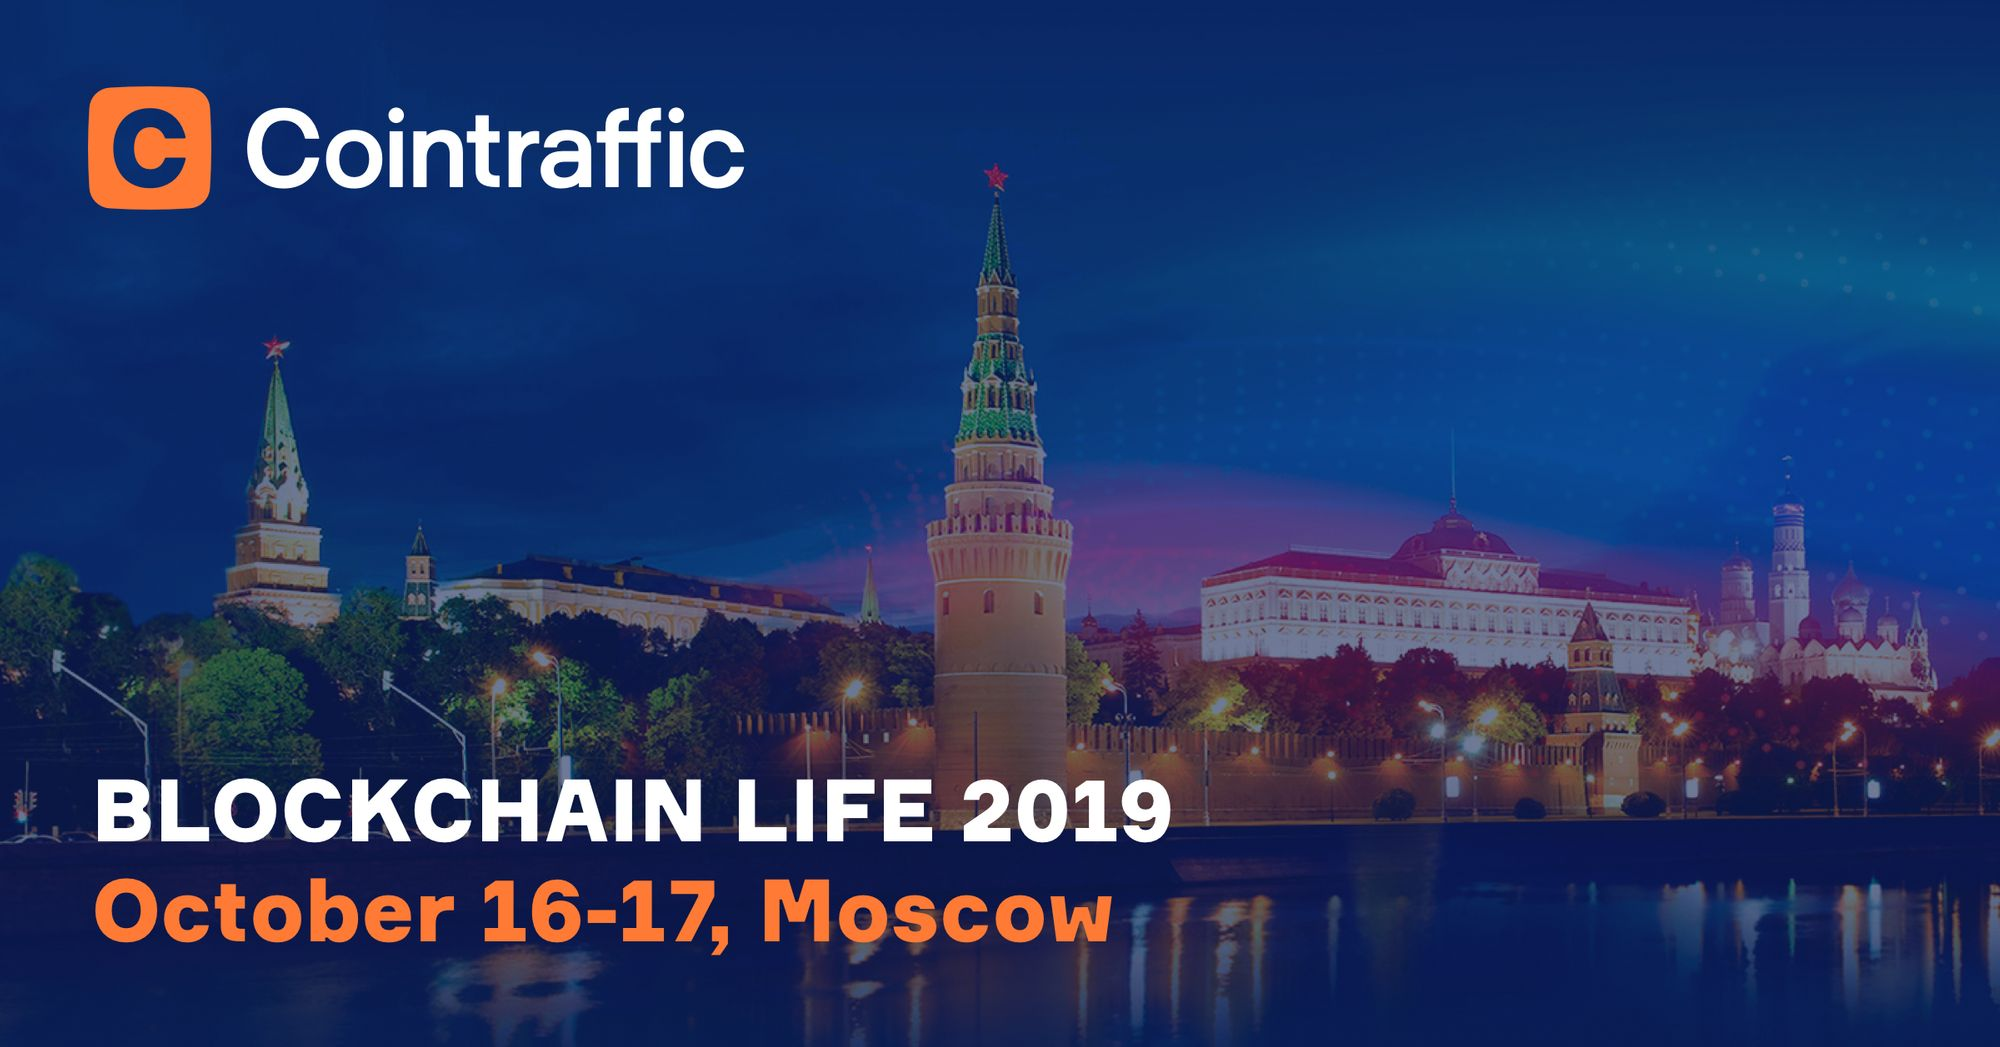 Here's Why You Need To Book Your Ticket to Attend Blockchain Life 2019